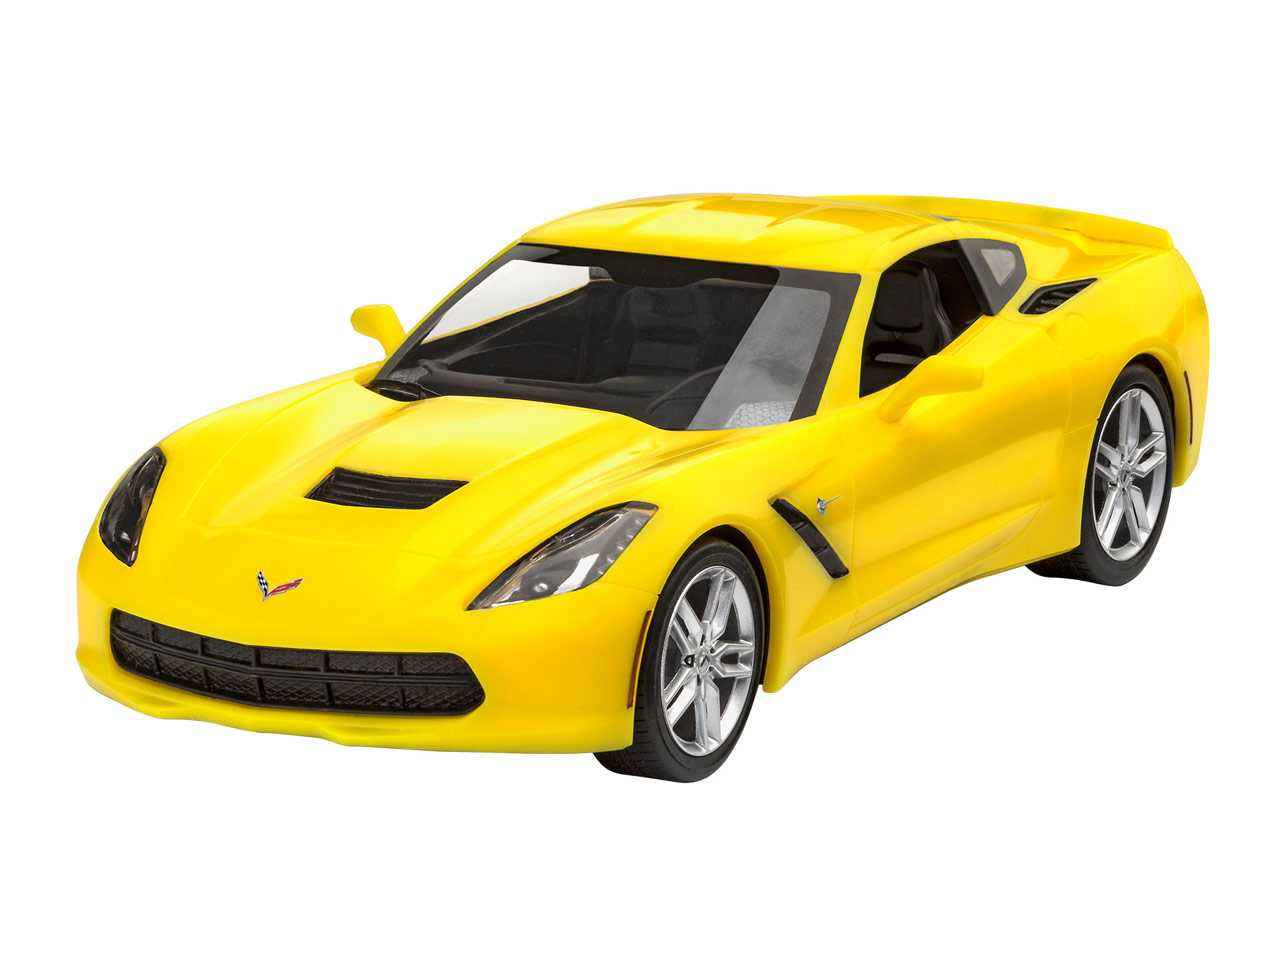 1:25 Corvette Stingray 2014 (Easy-Click System, Model Set)